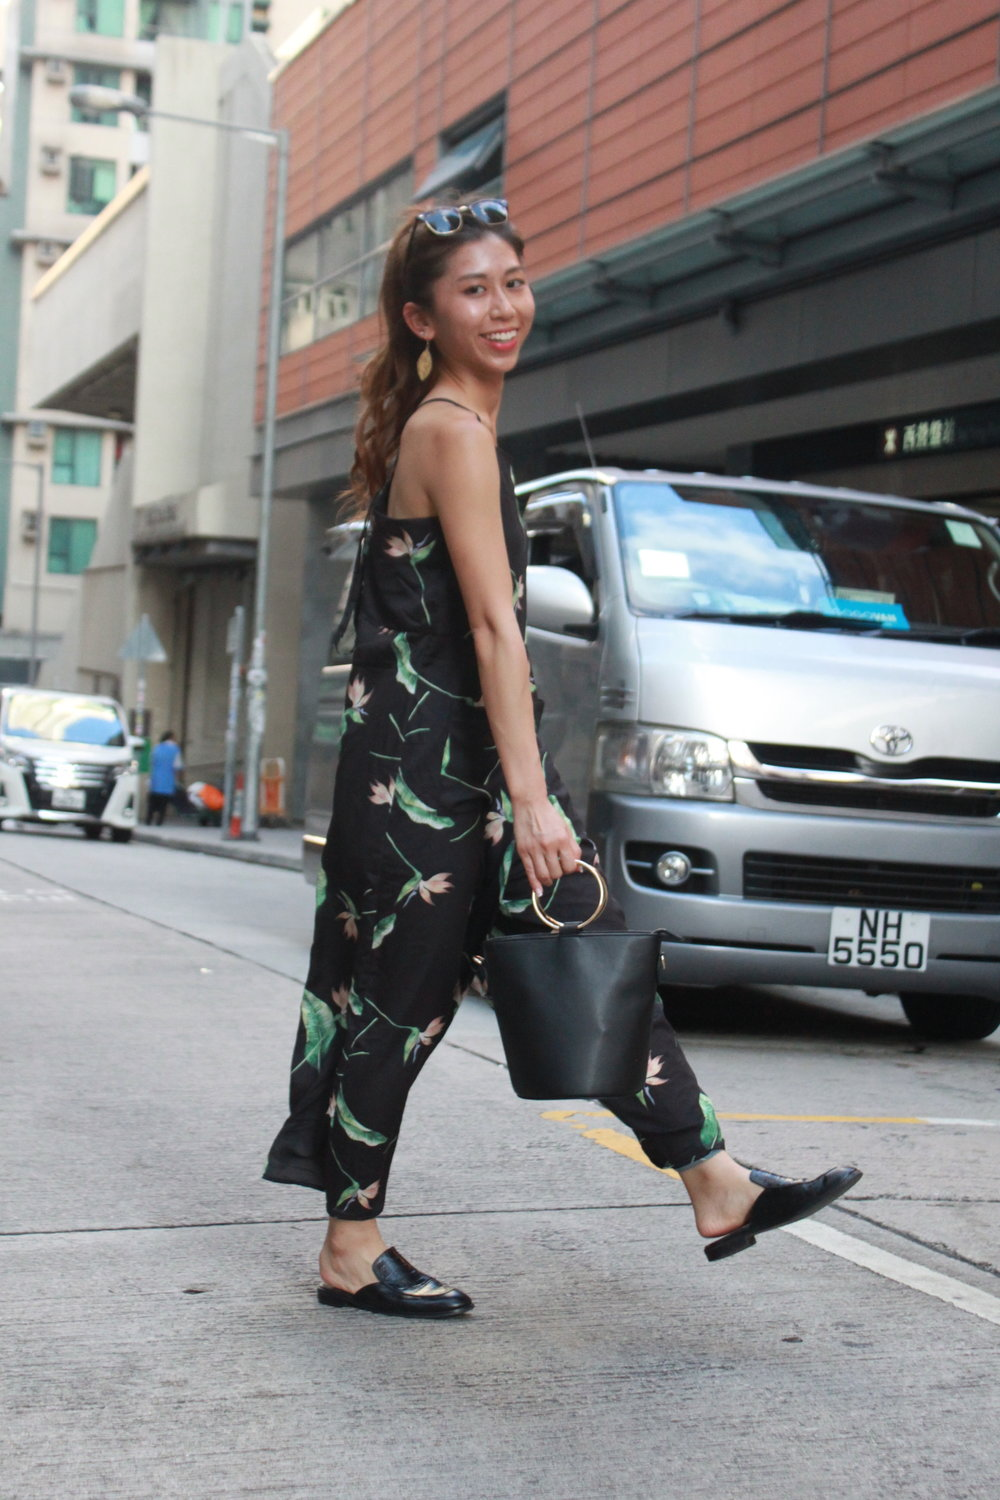 Murua floral jumpsuit  / Bucket bag from Japan / Giordano Ladies black slides